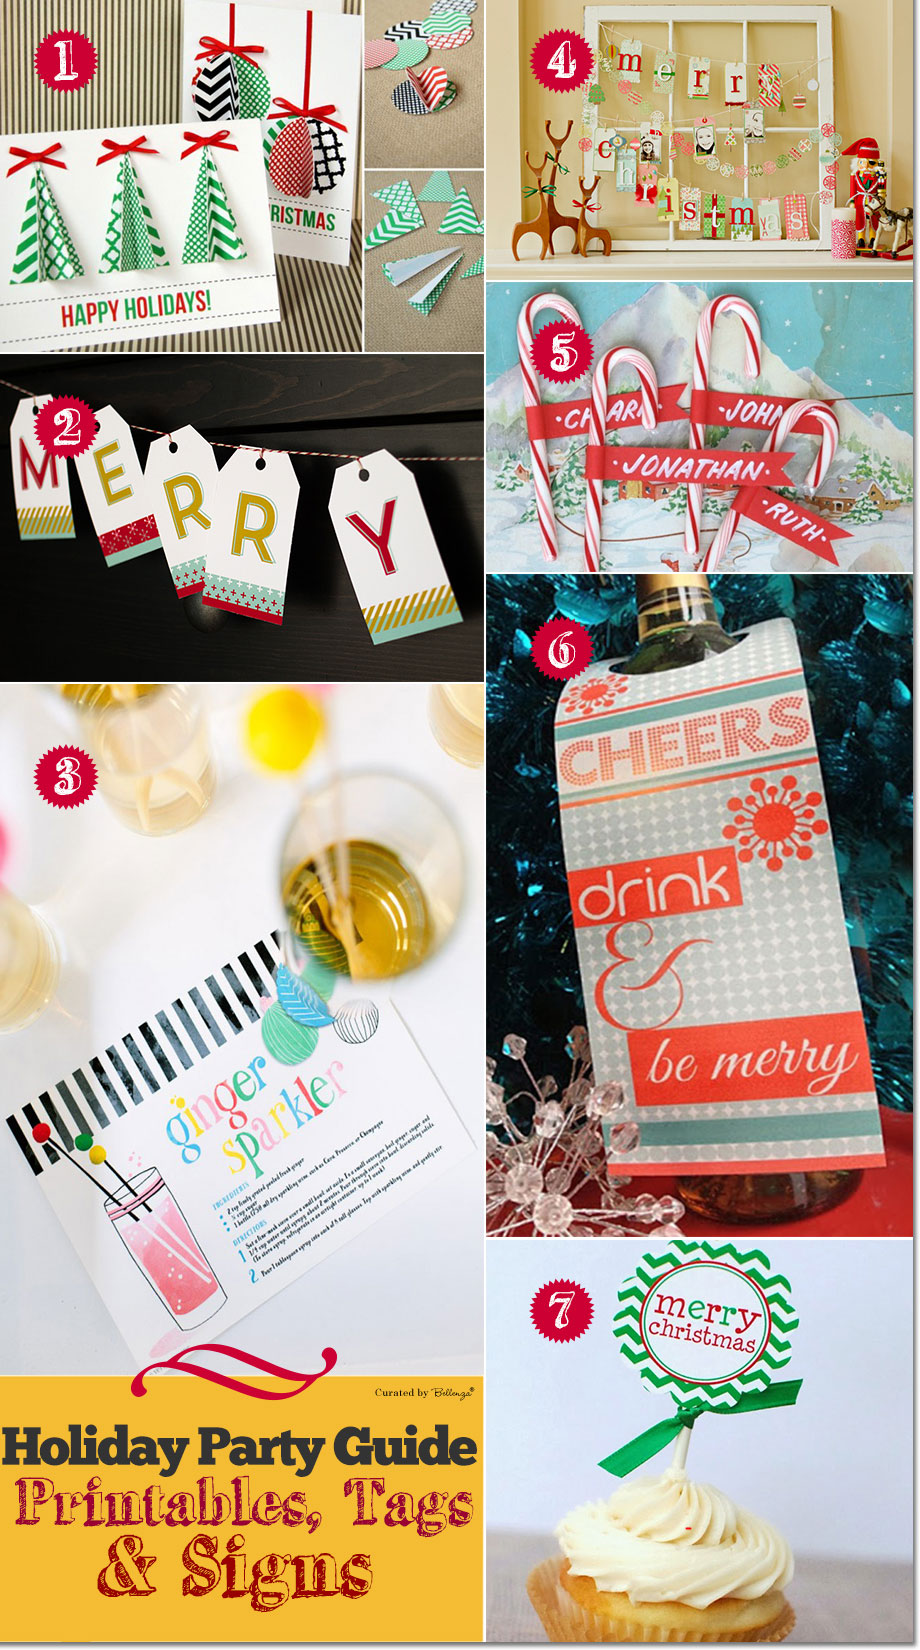 Holiday printables and tags for gifts, invites, and signs